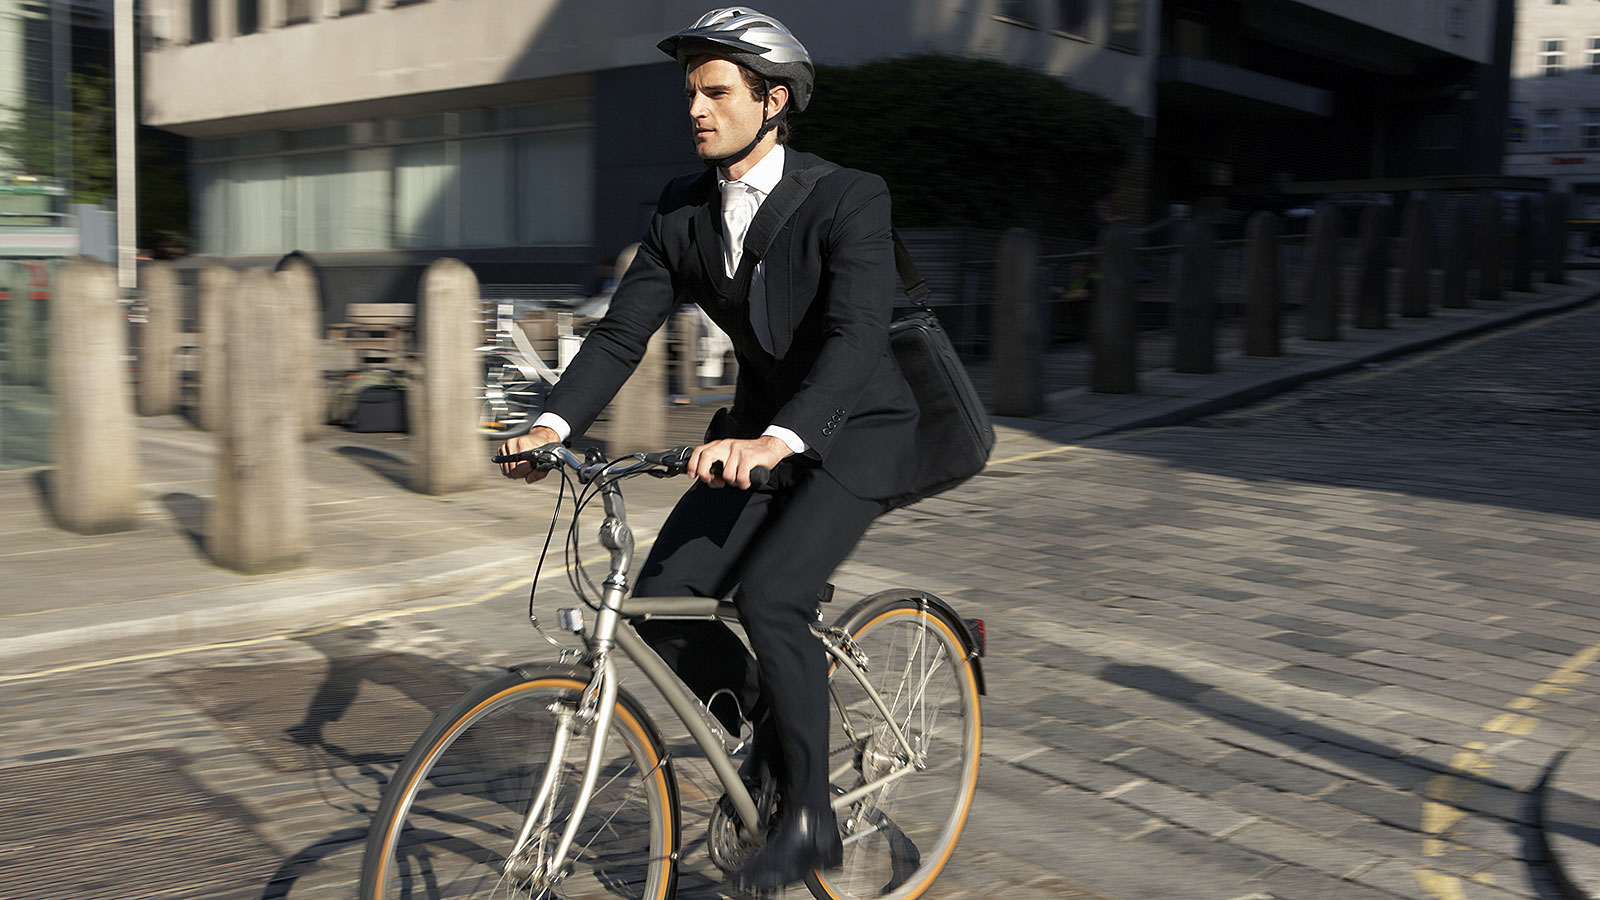 Here's how to start biking to work every day